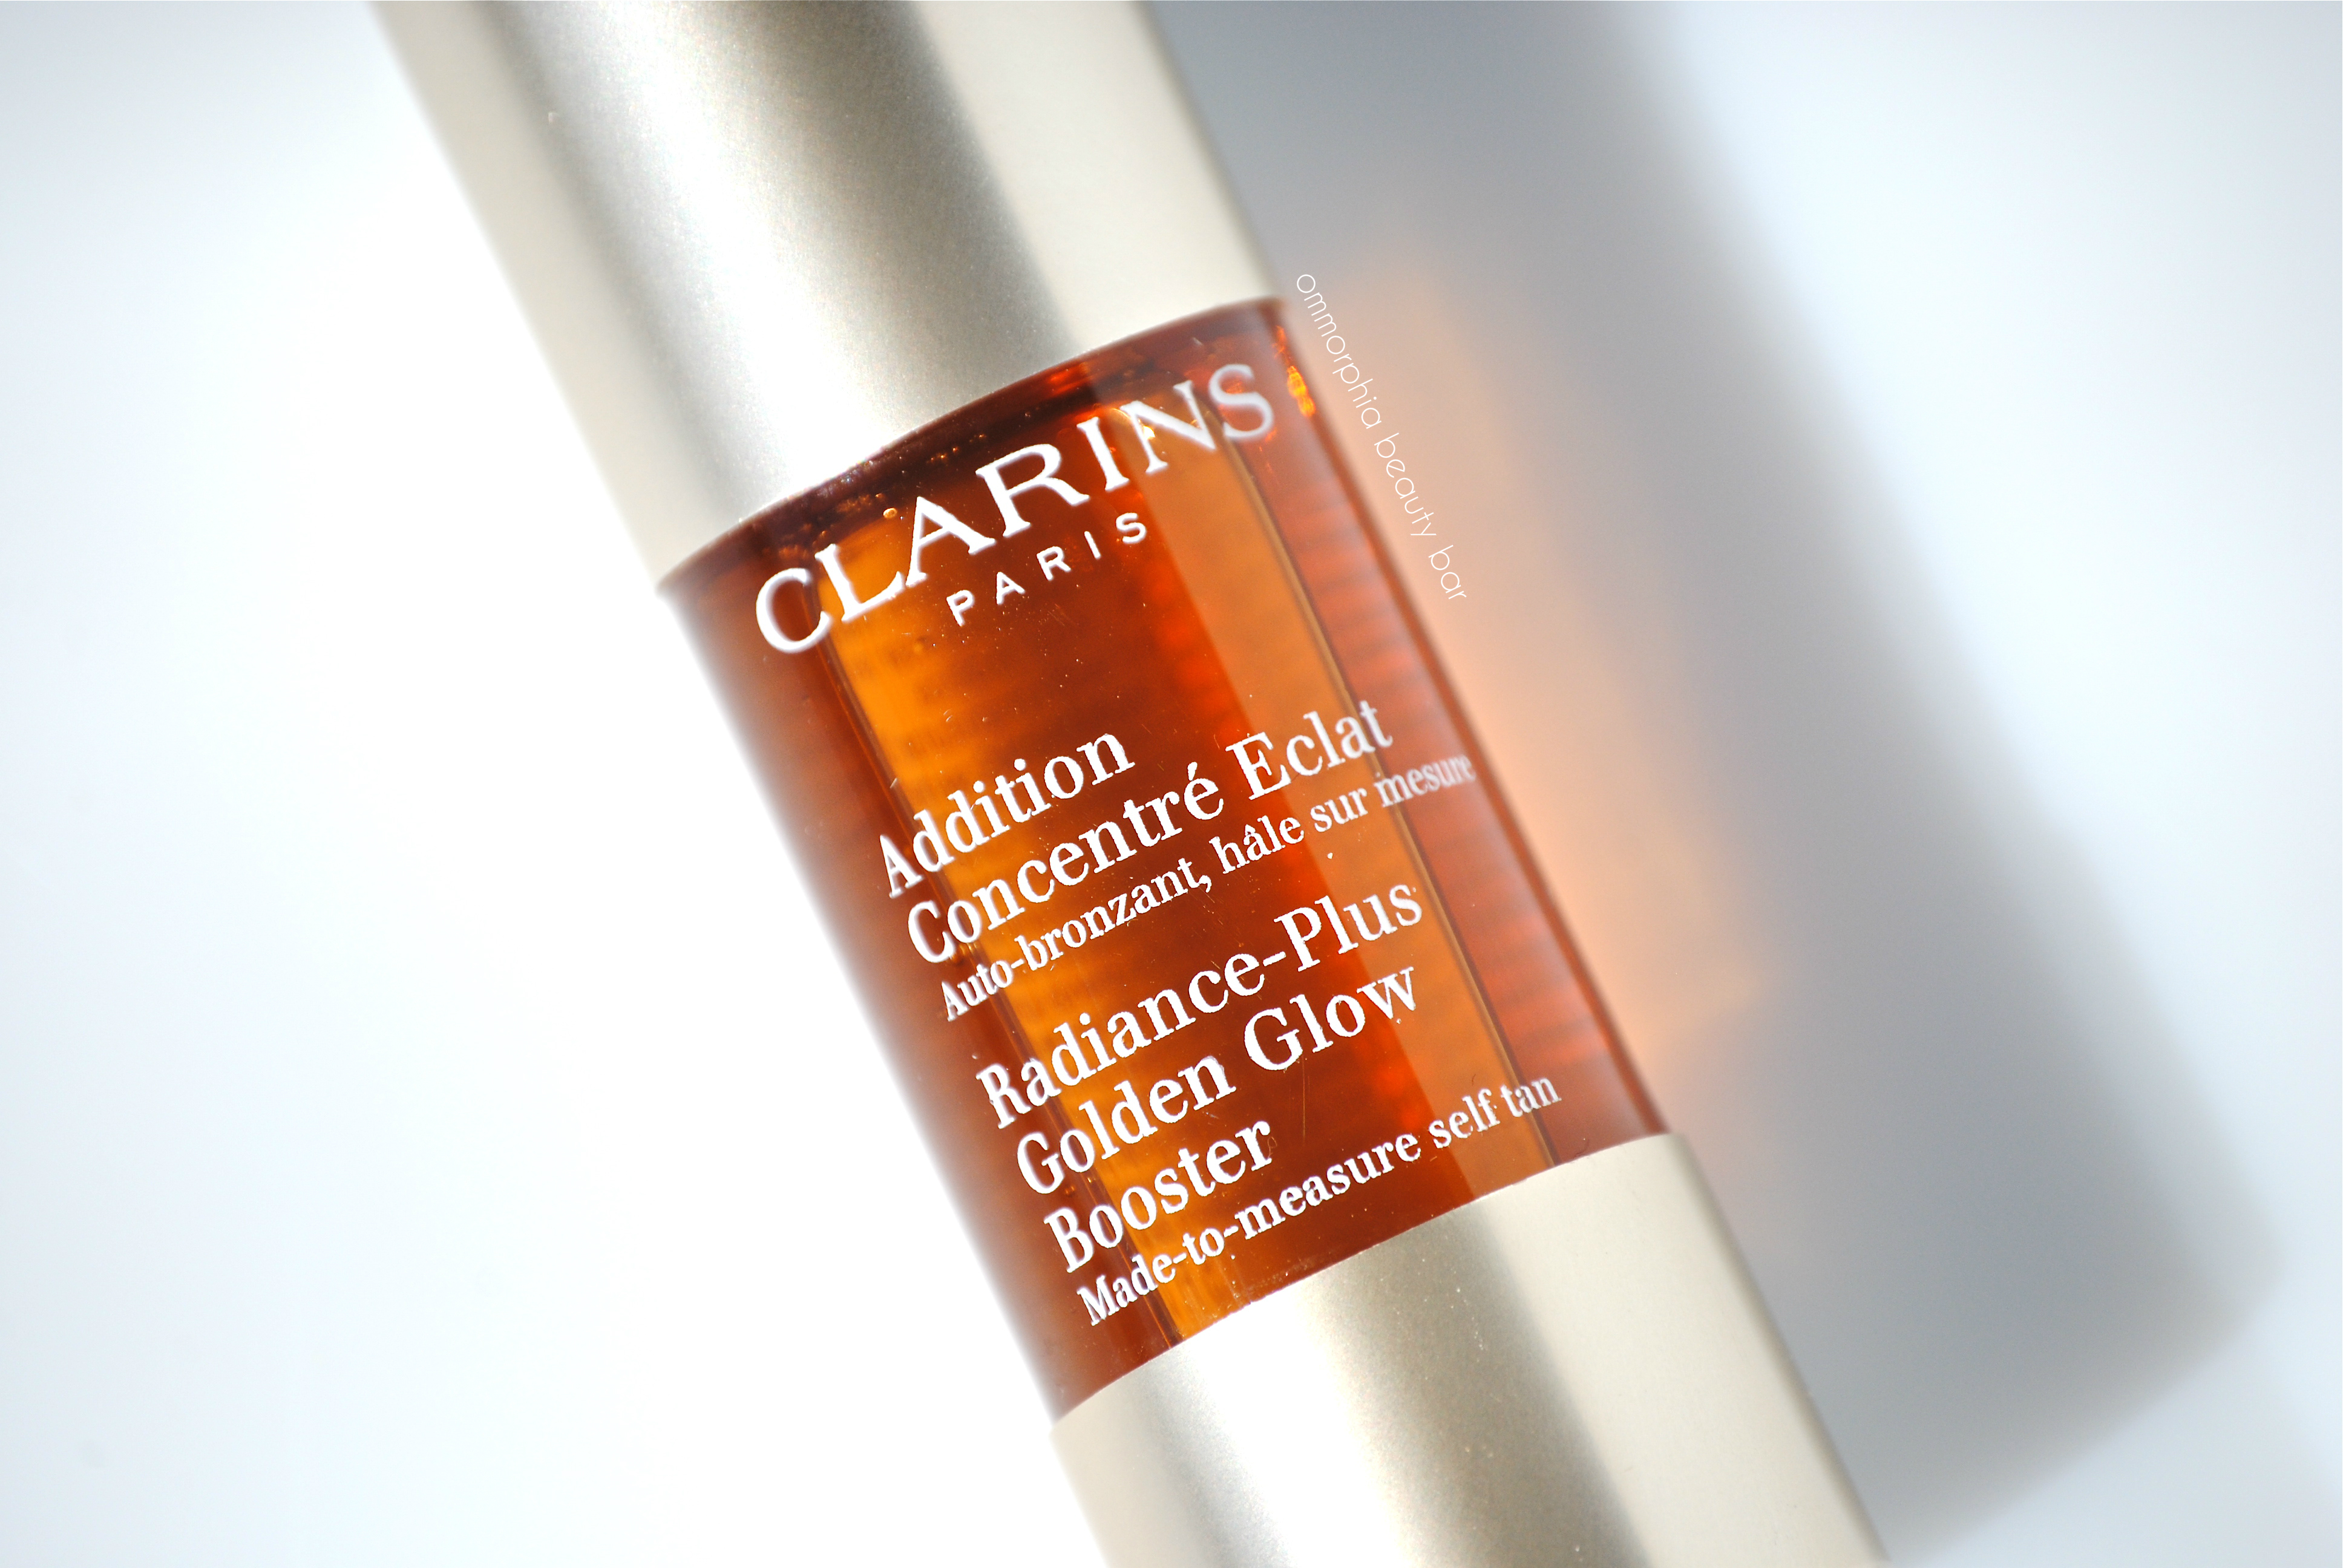 Clarins Radiance Plus Golden Glow Booster - youtube.com